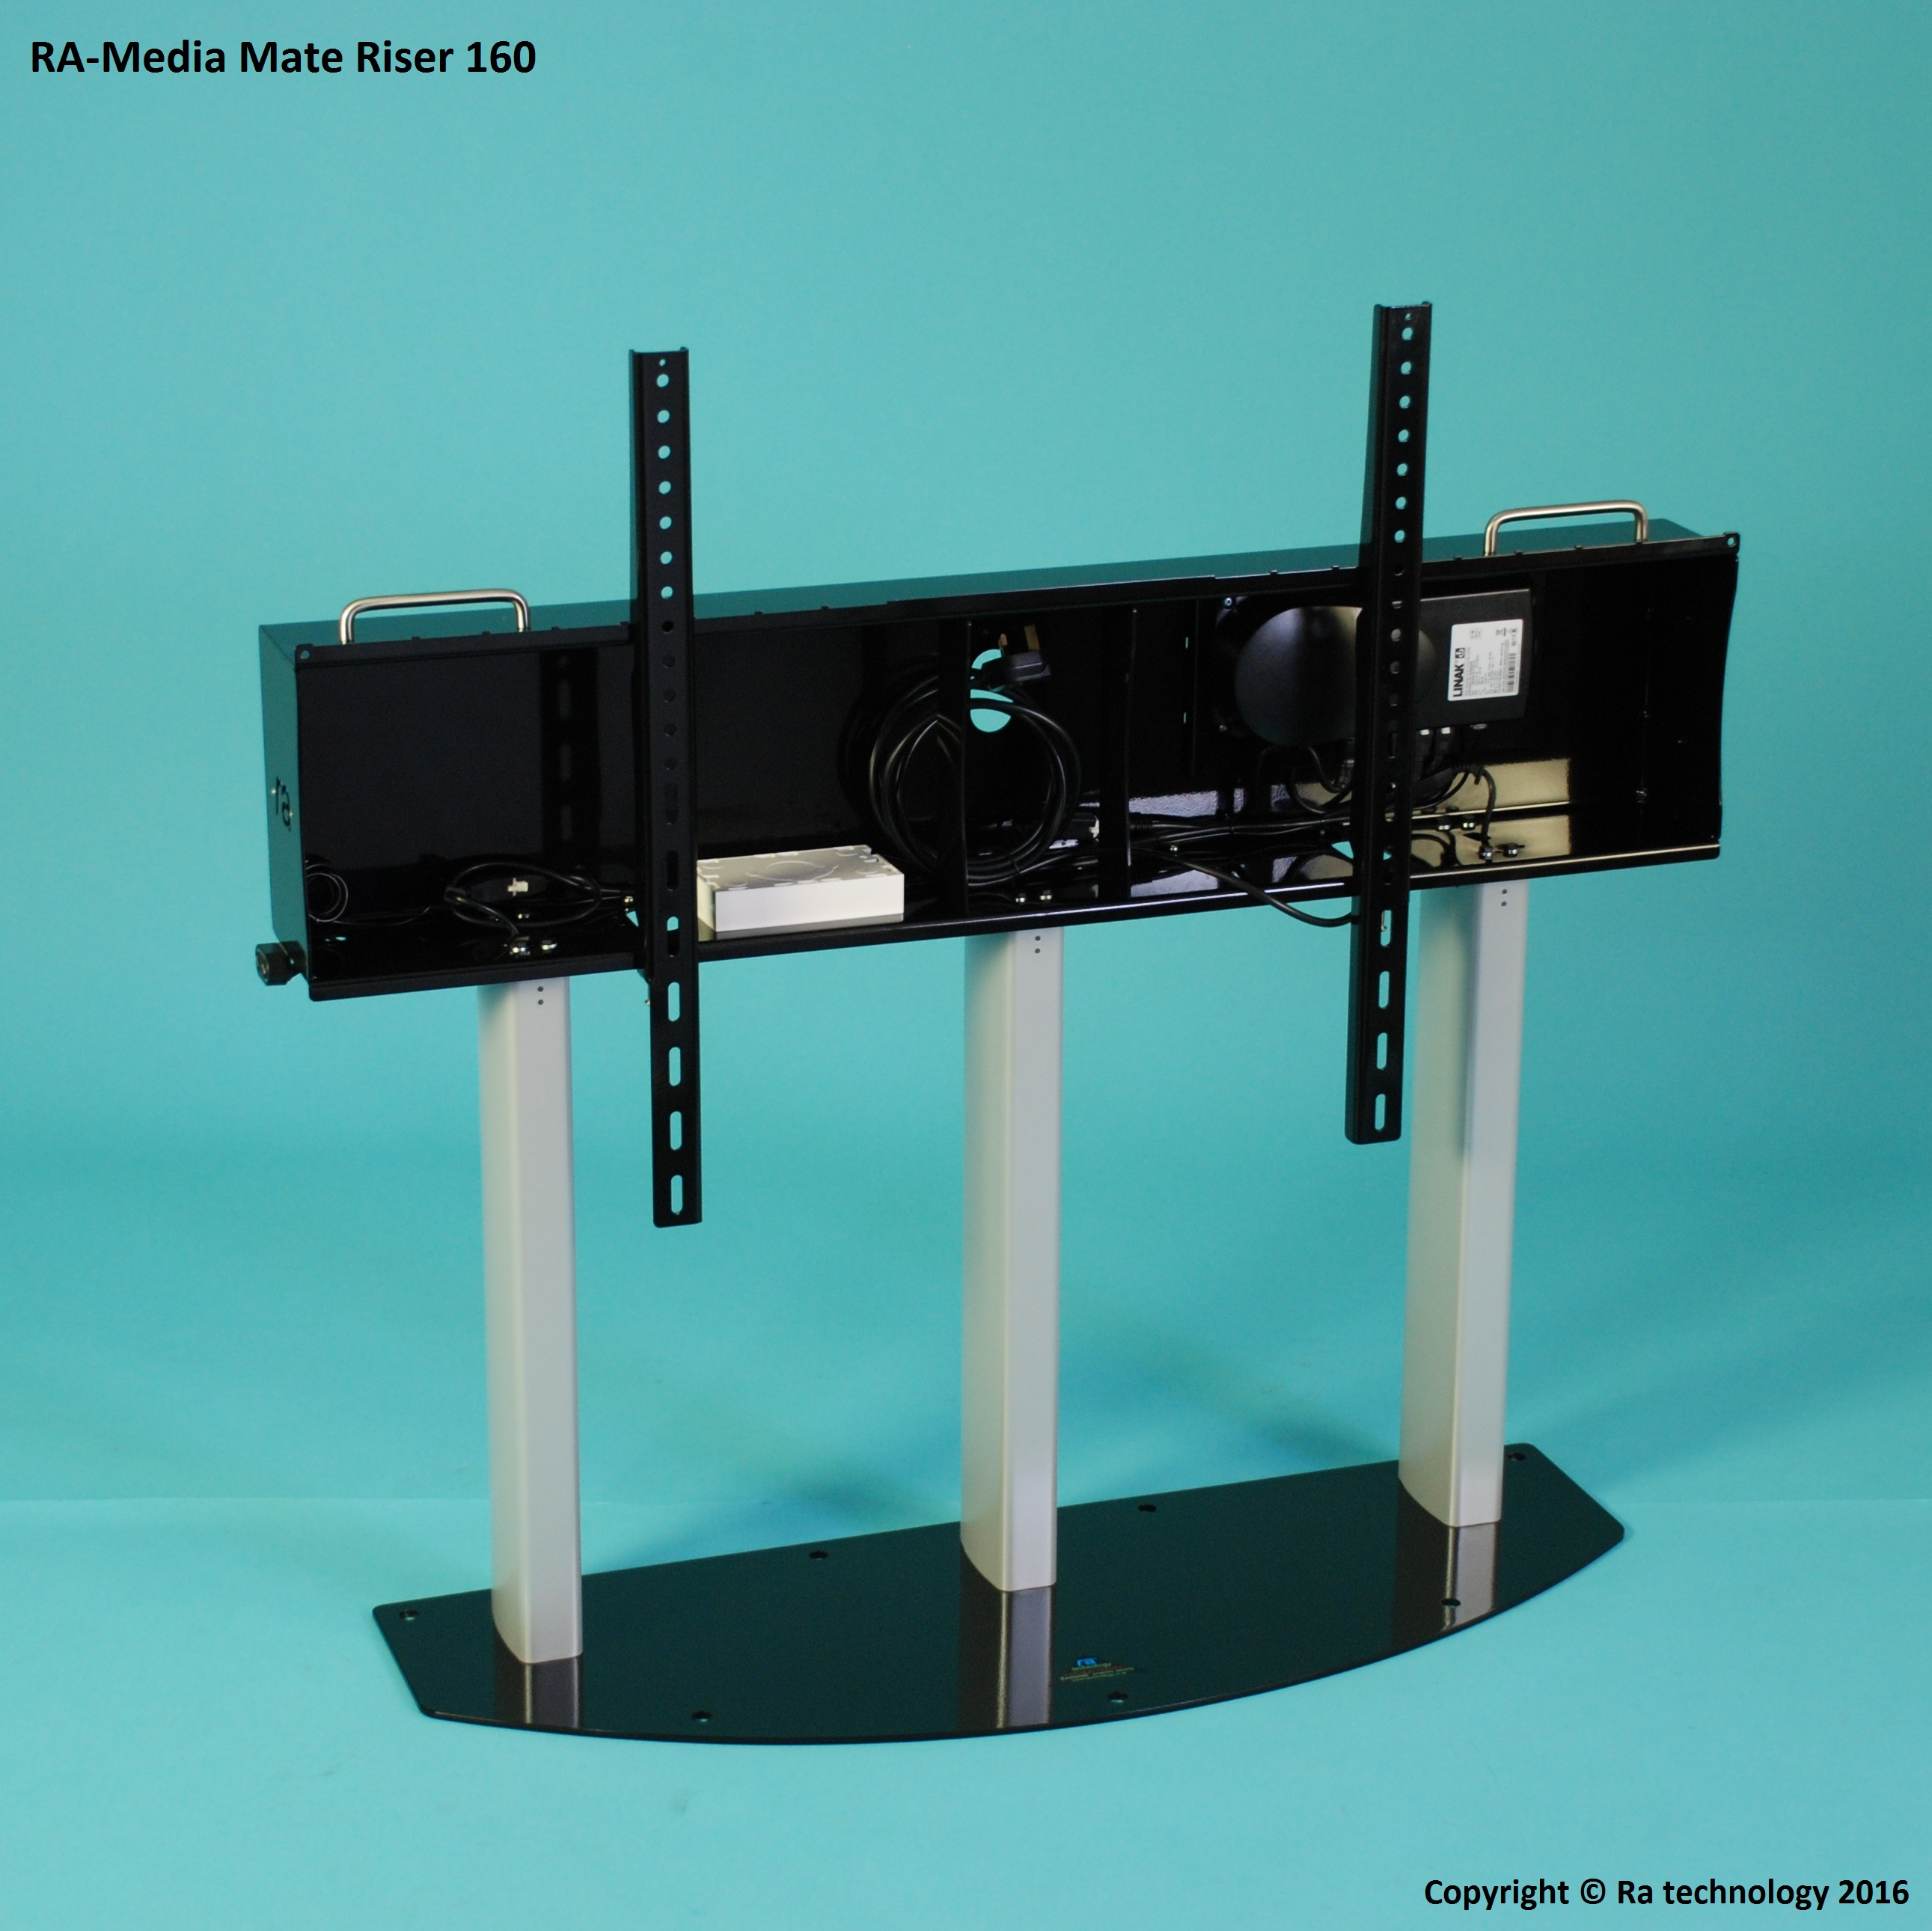 RA Media Mate Riser 160. Large Screens Up To 160kg